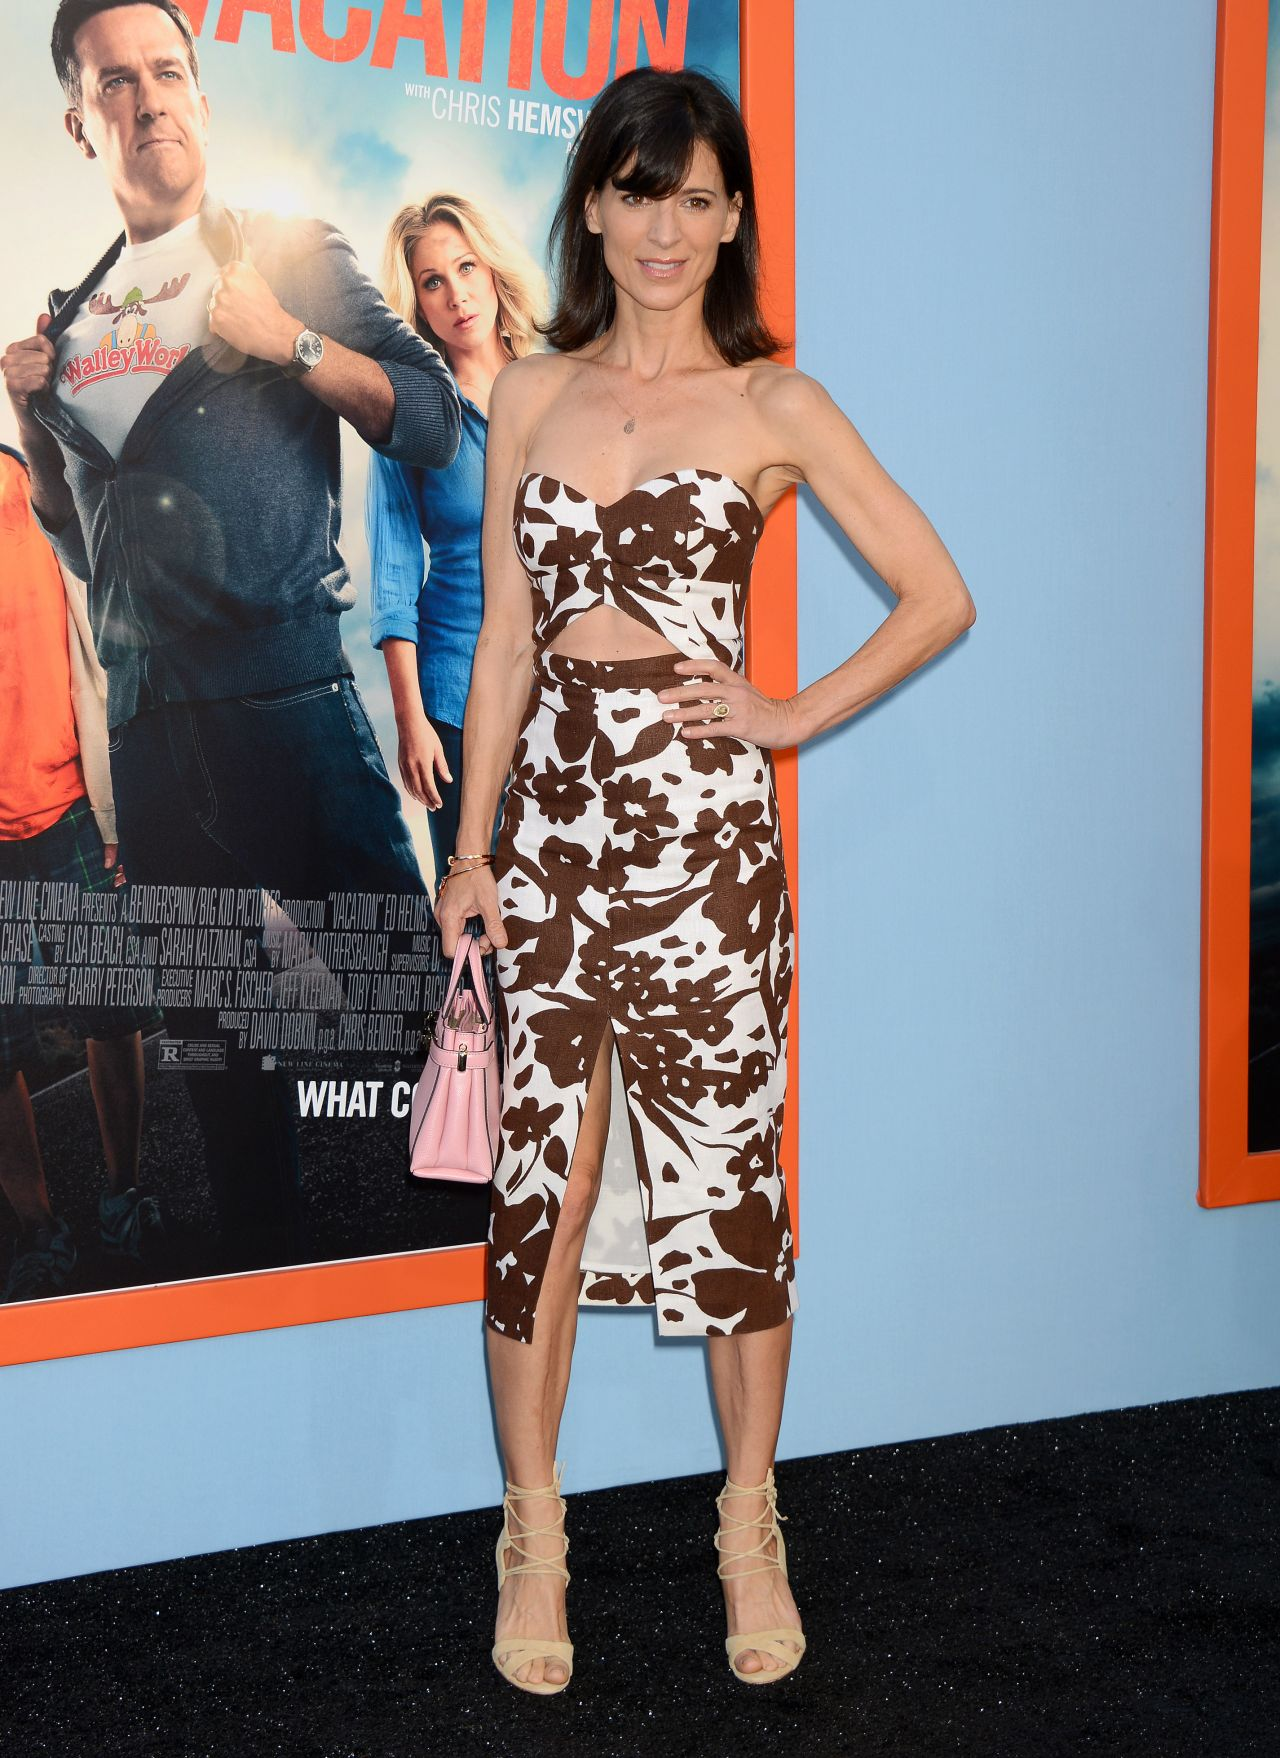 perrey-reeves-vacation-premiere-in-westwood_6